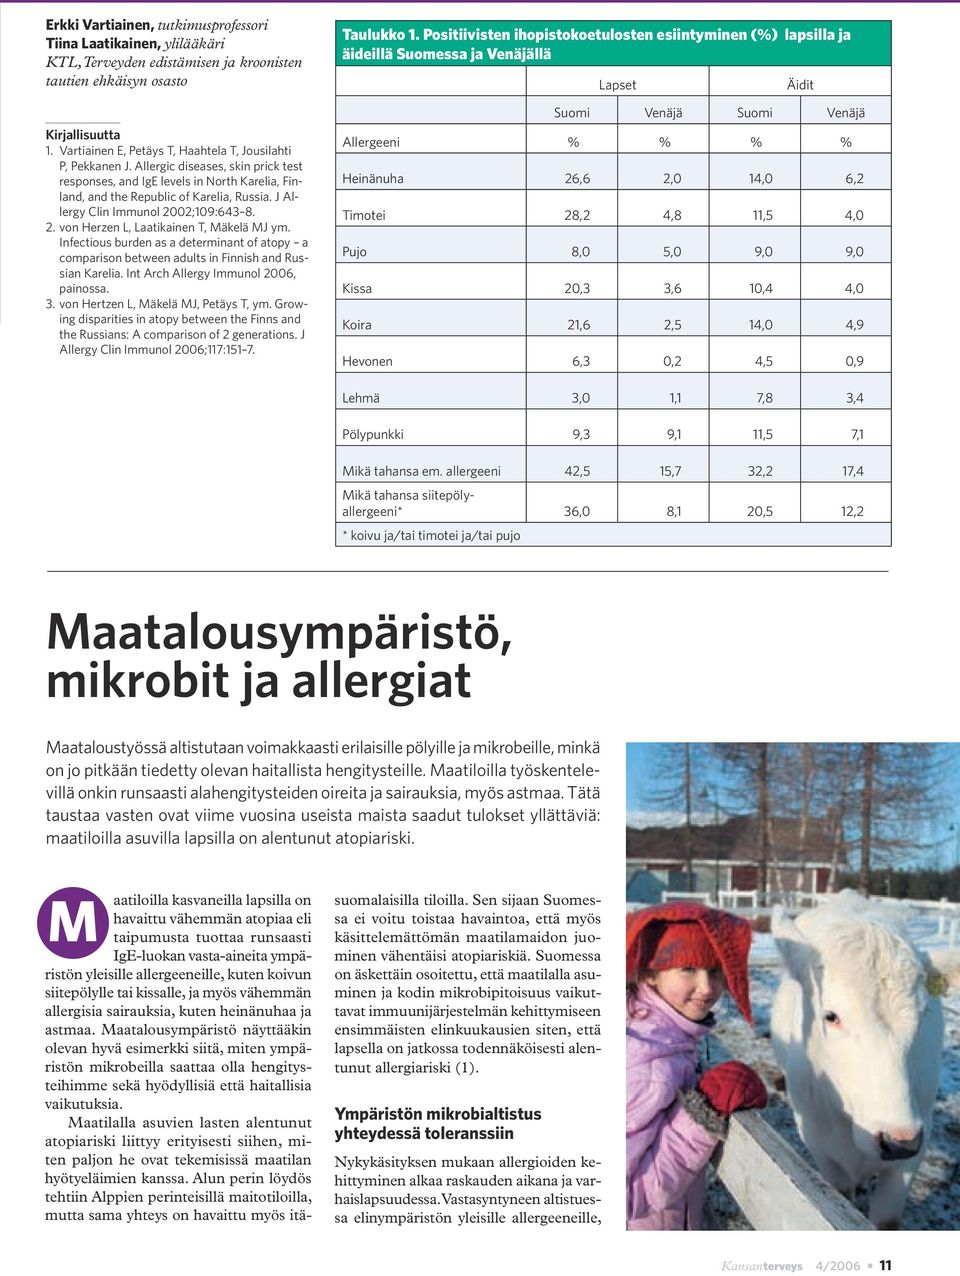 J Allergy Clin Immunol 2002;109:643 8. 2. von Herzen L, Laatikainen T, Mäkelä MJ ym. Infectious burden as a determinant of atopy a comparison between adults in Finnish and Russian Karelia.